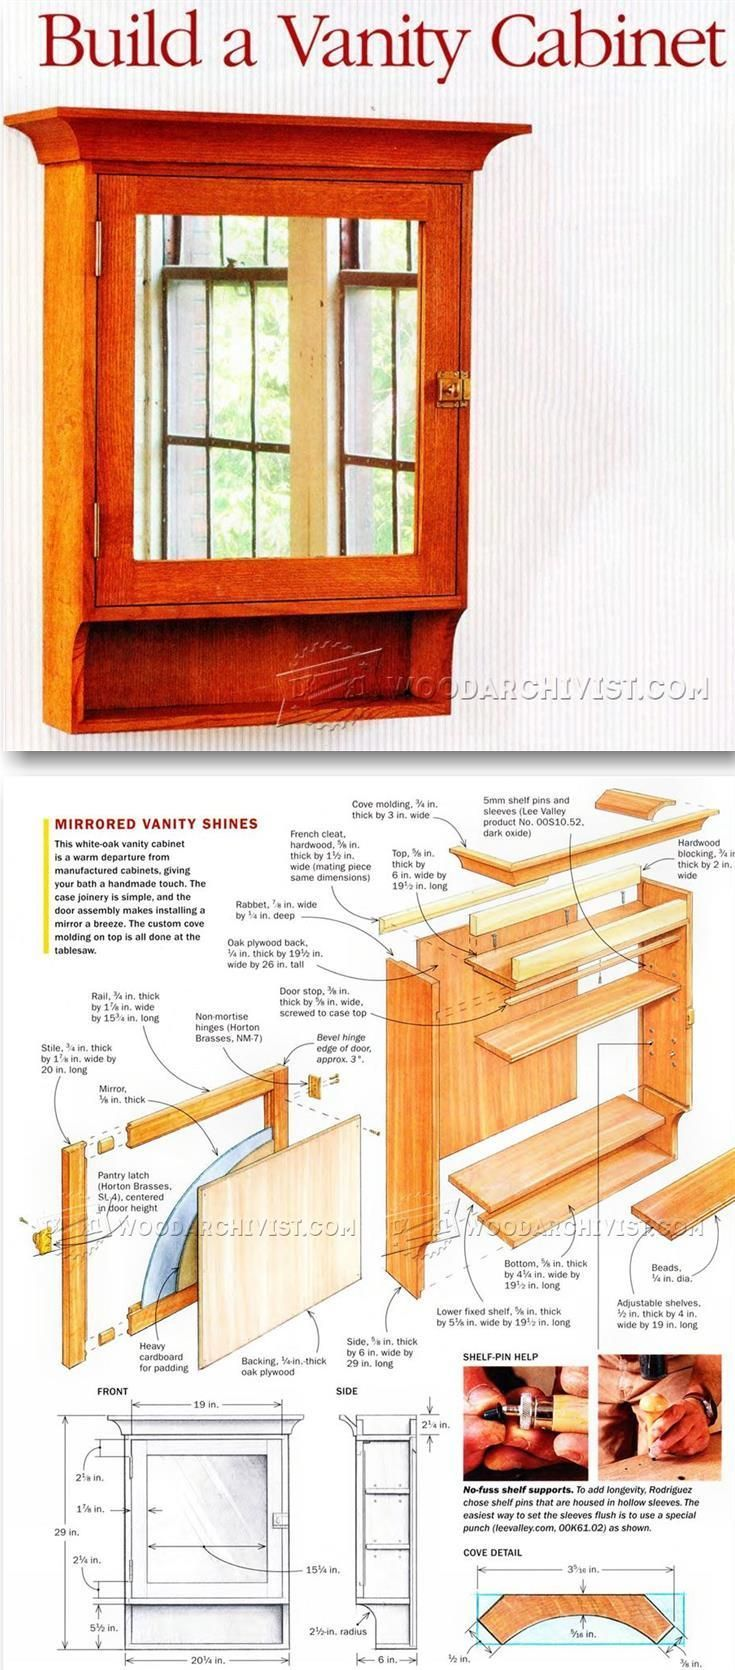 Vanity Cabinet Plans - Furniture Plans and Projects | WoodArchivist.com